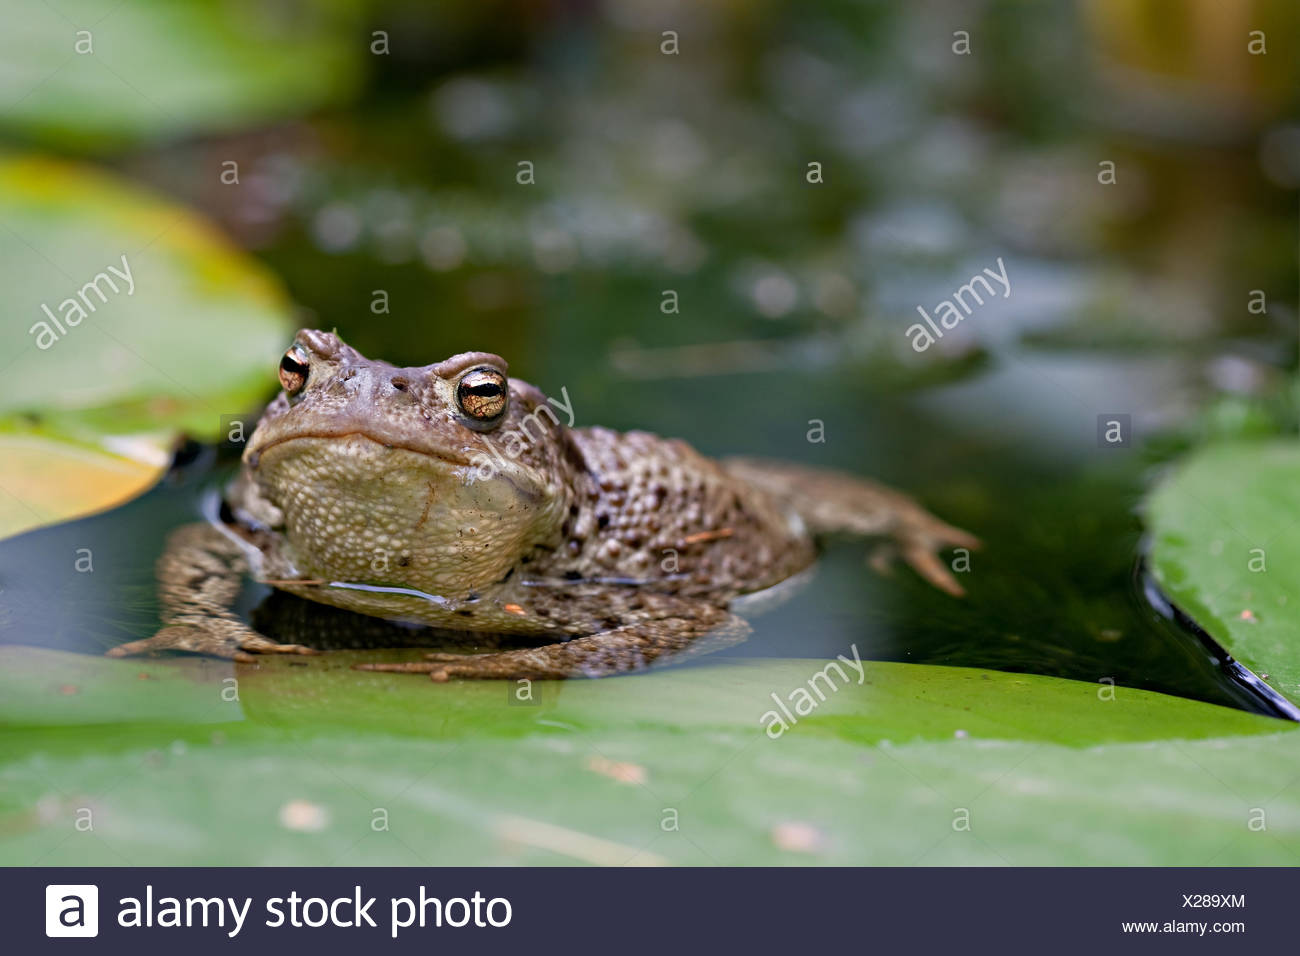 frog fresh water pond water slippery toad sullen amphibian curious nosey nosy Stock Photo